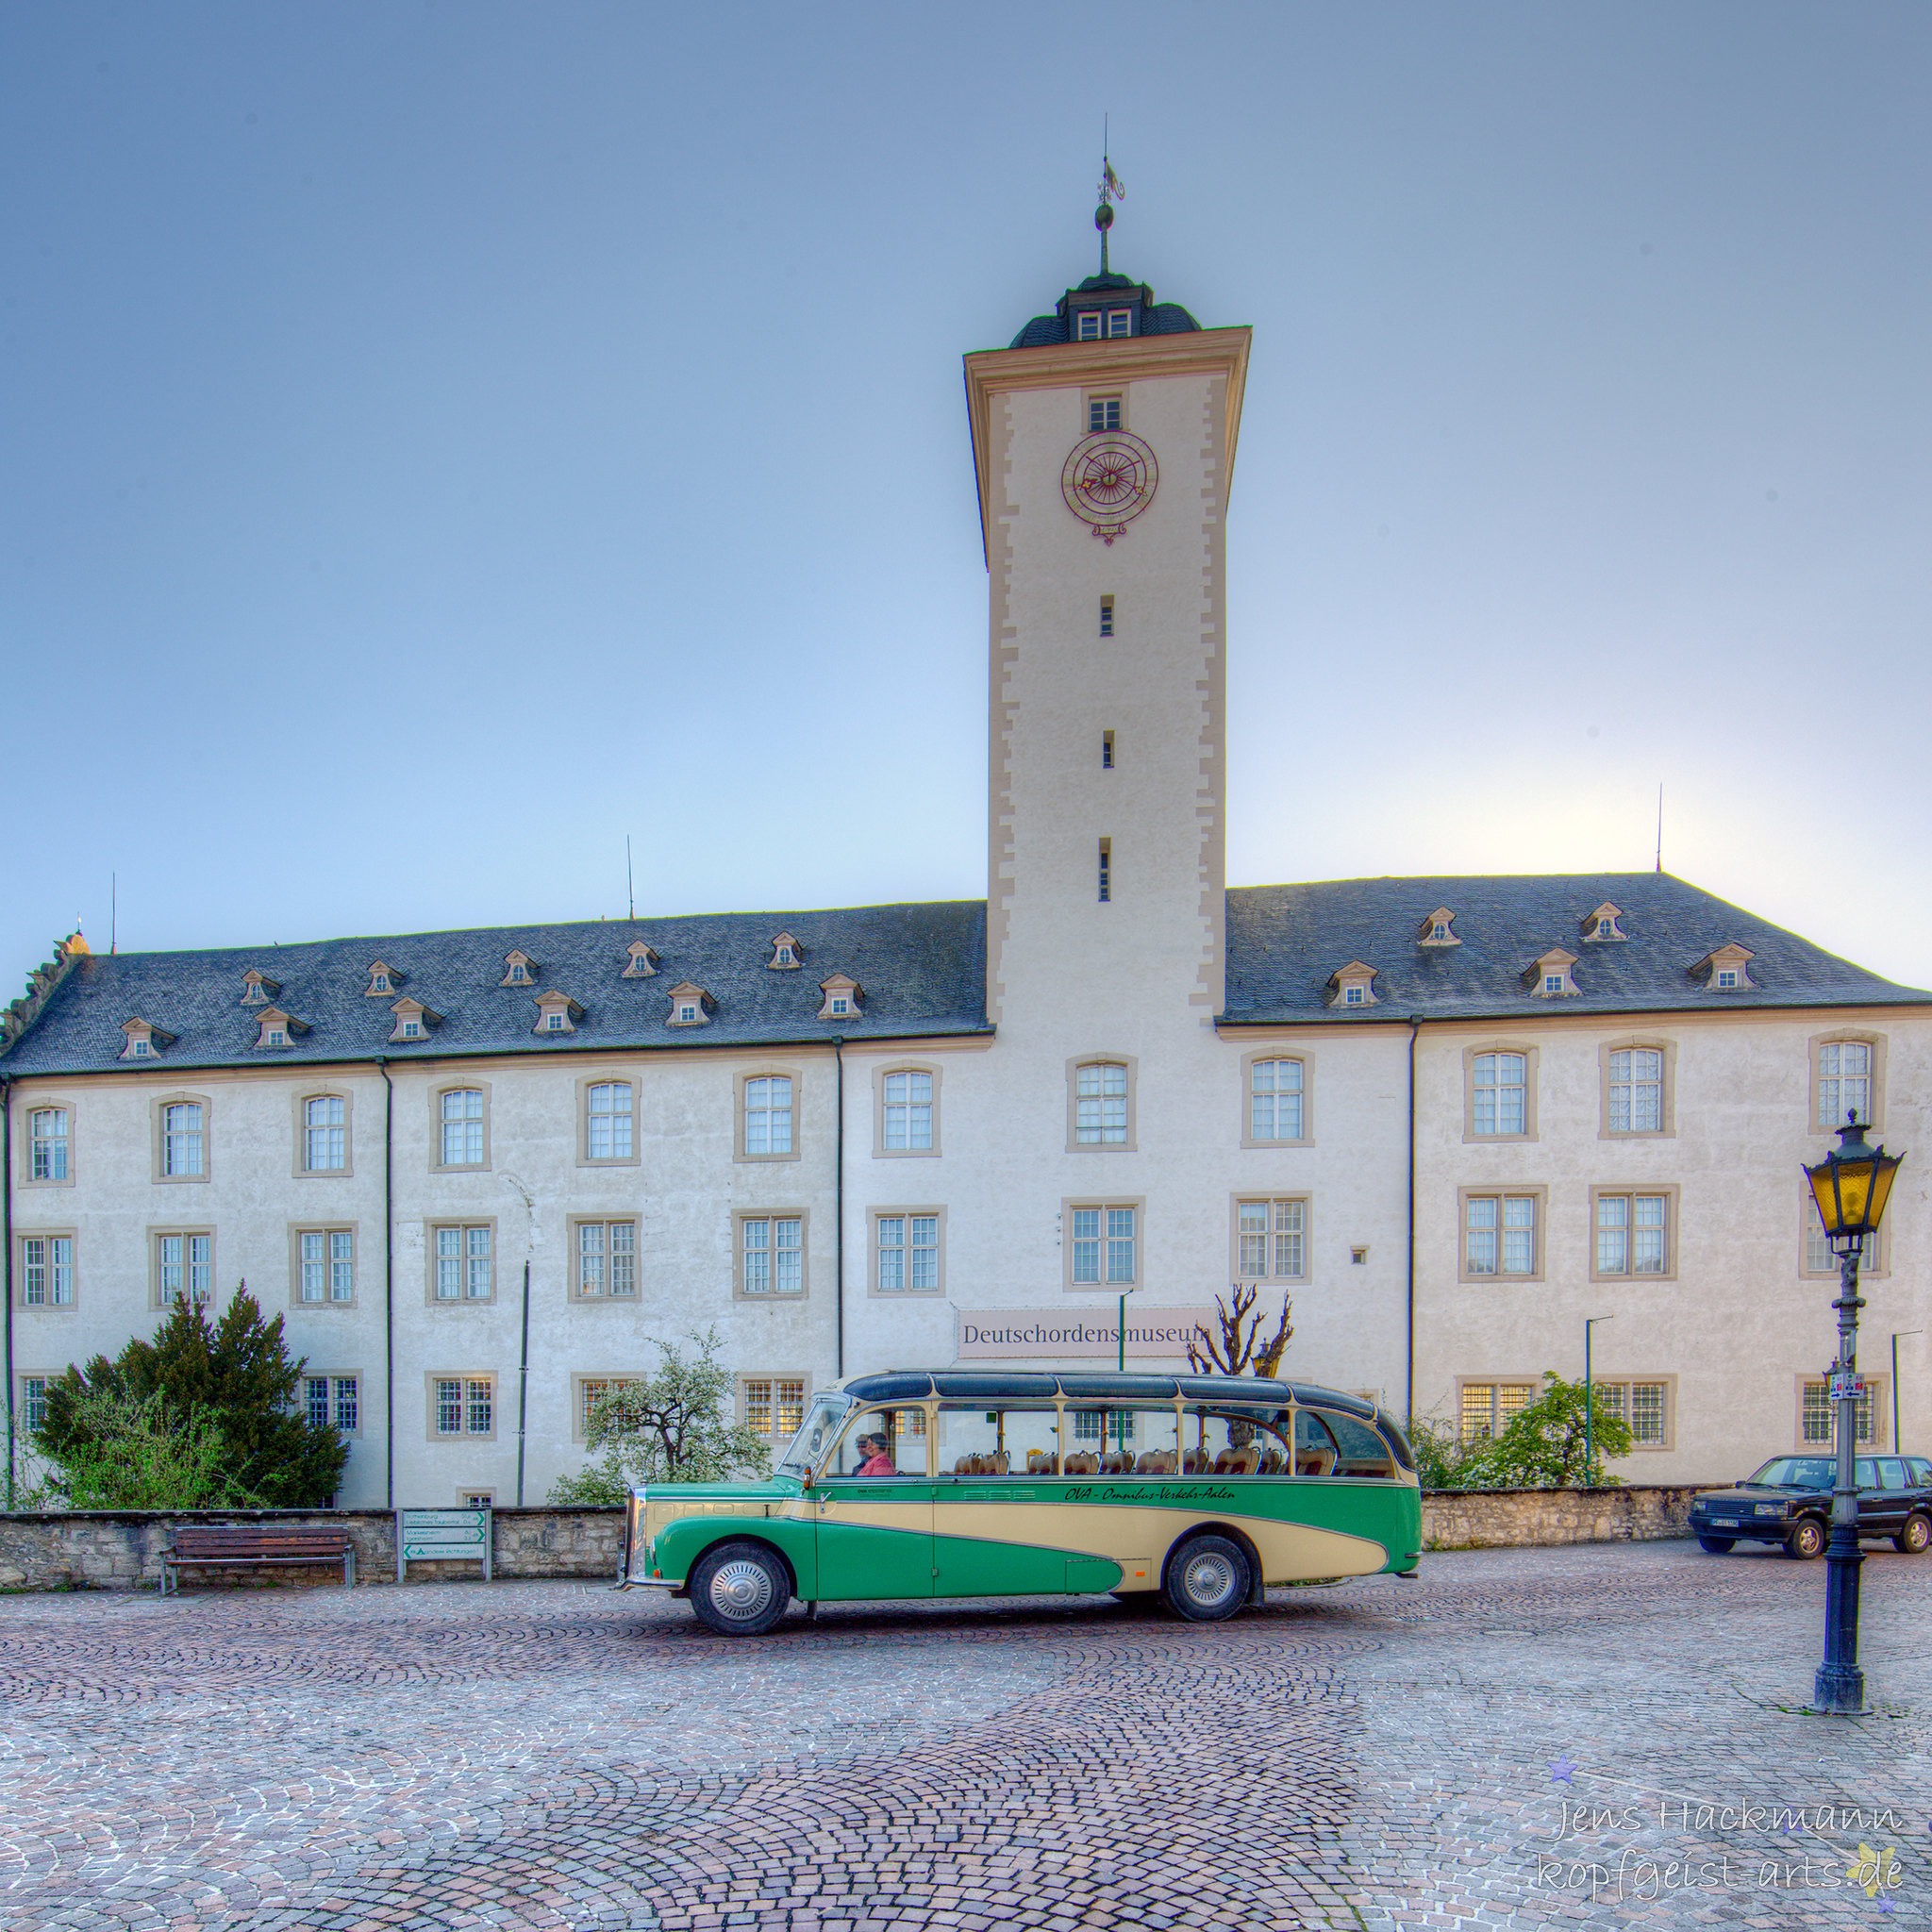 7. Internationales Oldtimer Bustreffen